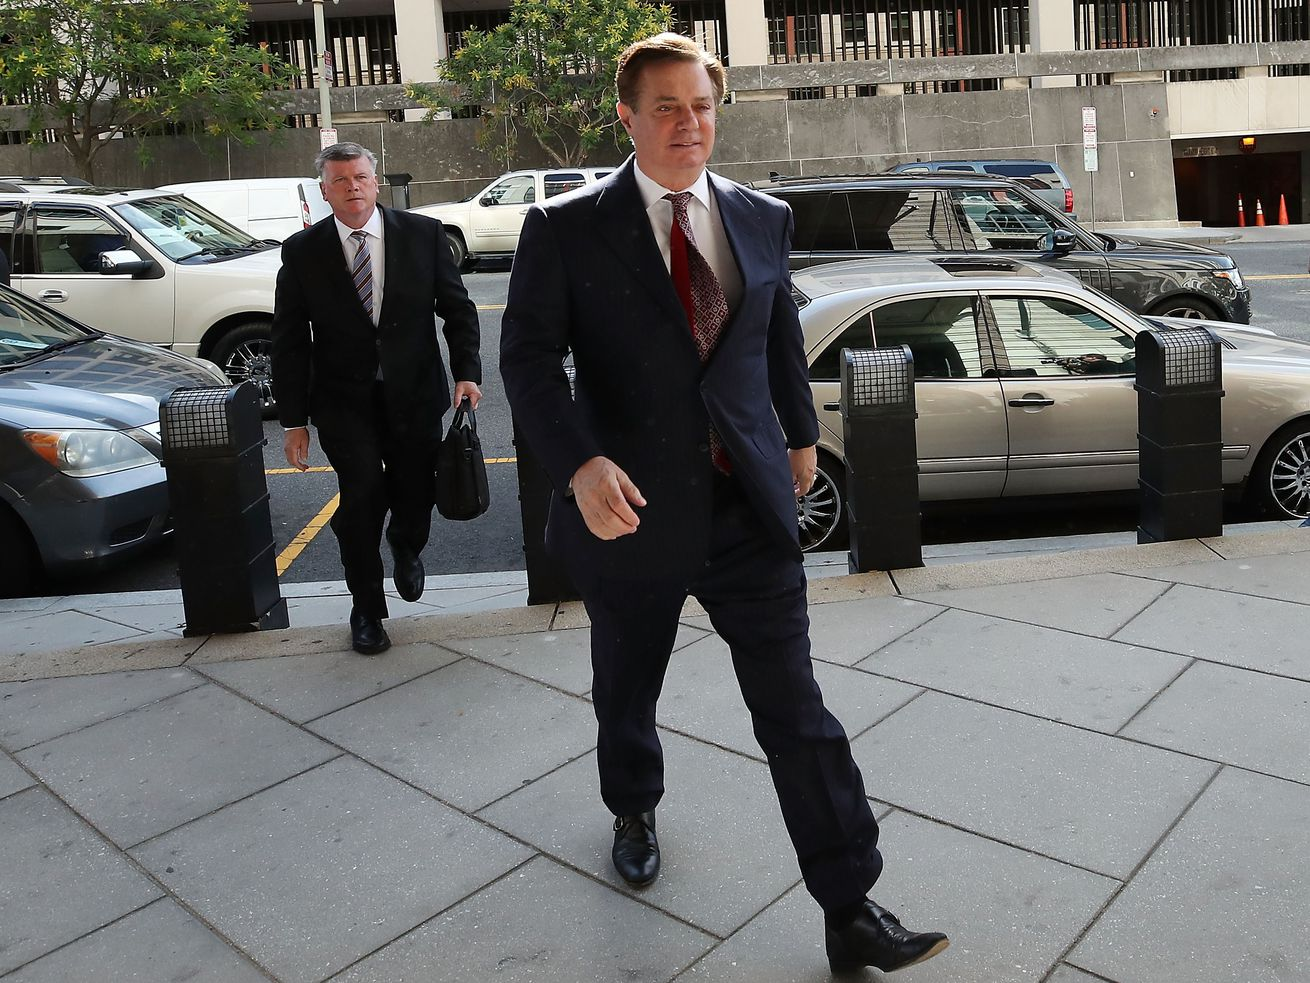 Paul Manafort arriving at a Washington, DC court hearing in June 2018.